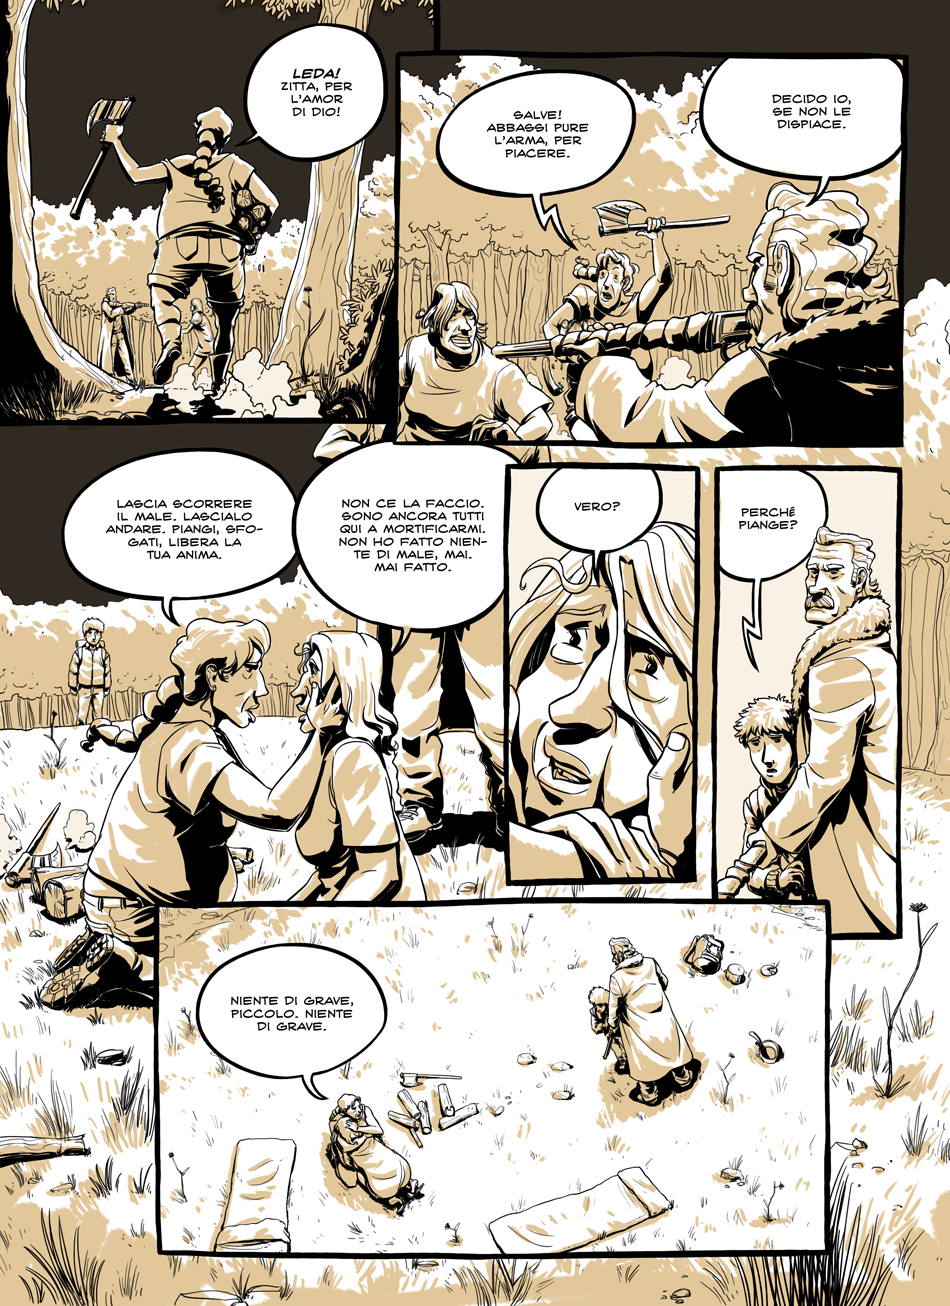 webcomics italia webcomic fumetto graphic novel fantascienza distopia postapocalittico ambientato in Italia avventura